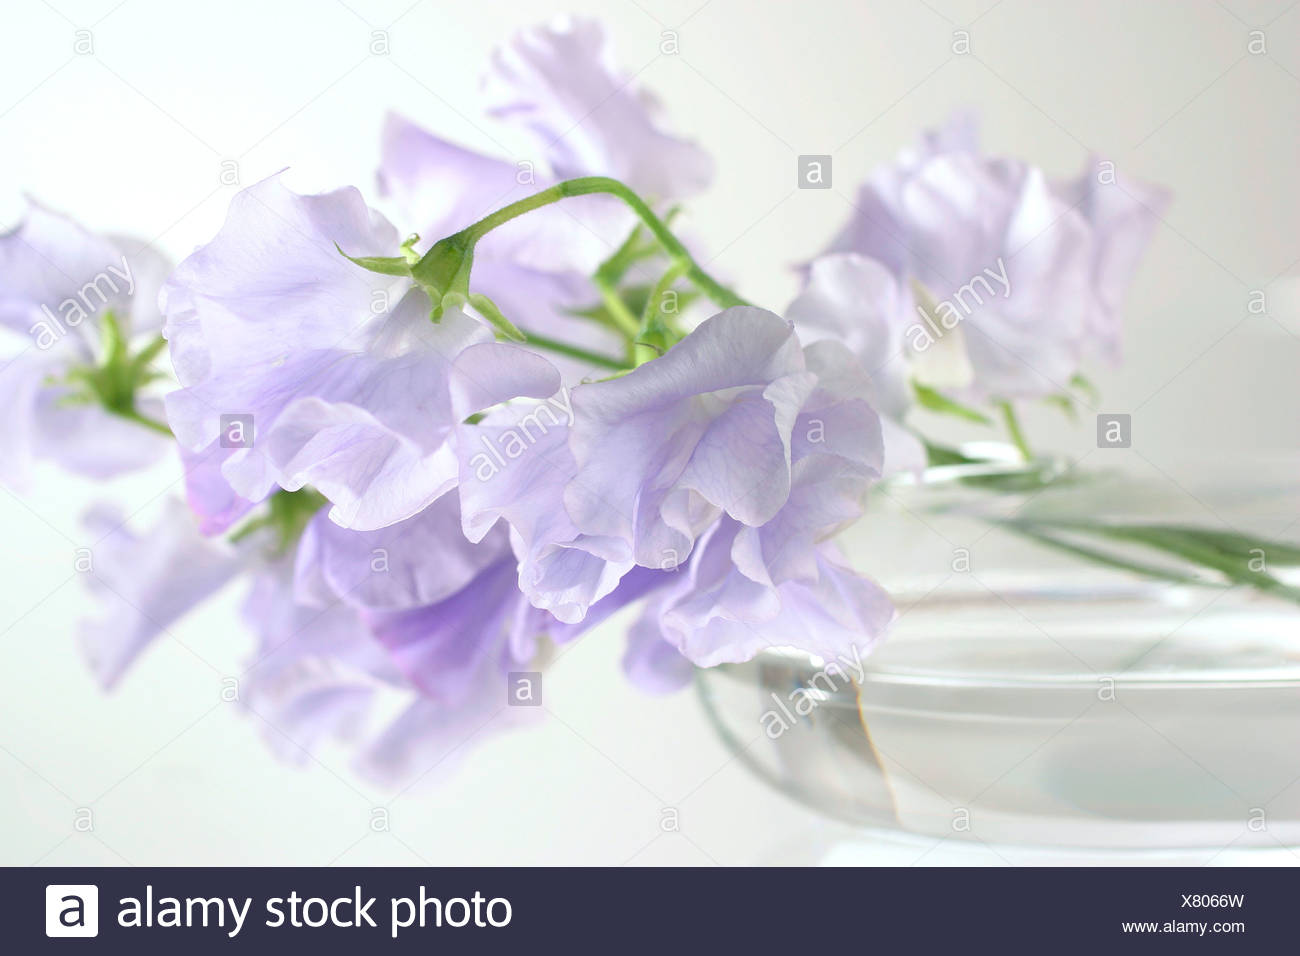 Maybe double flower petunias? - Stock Image